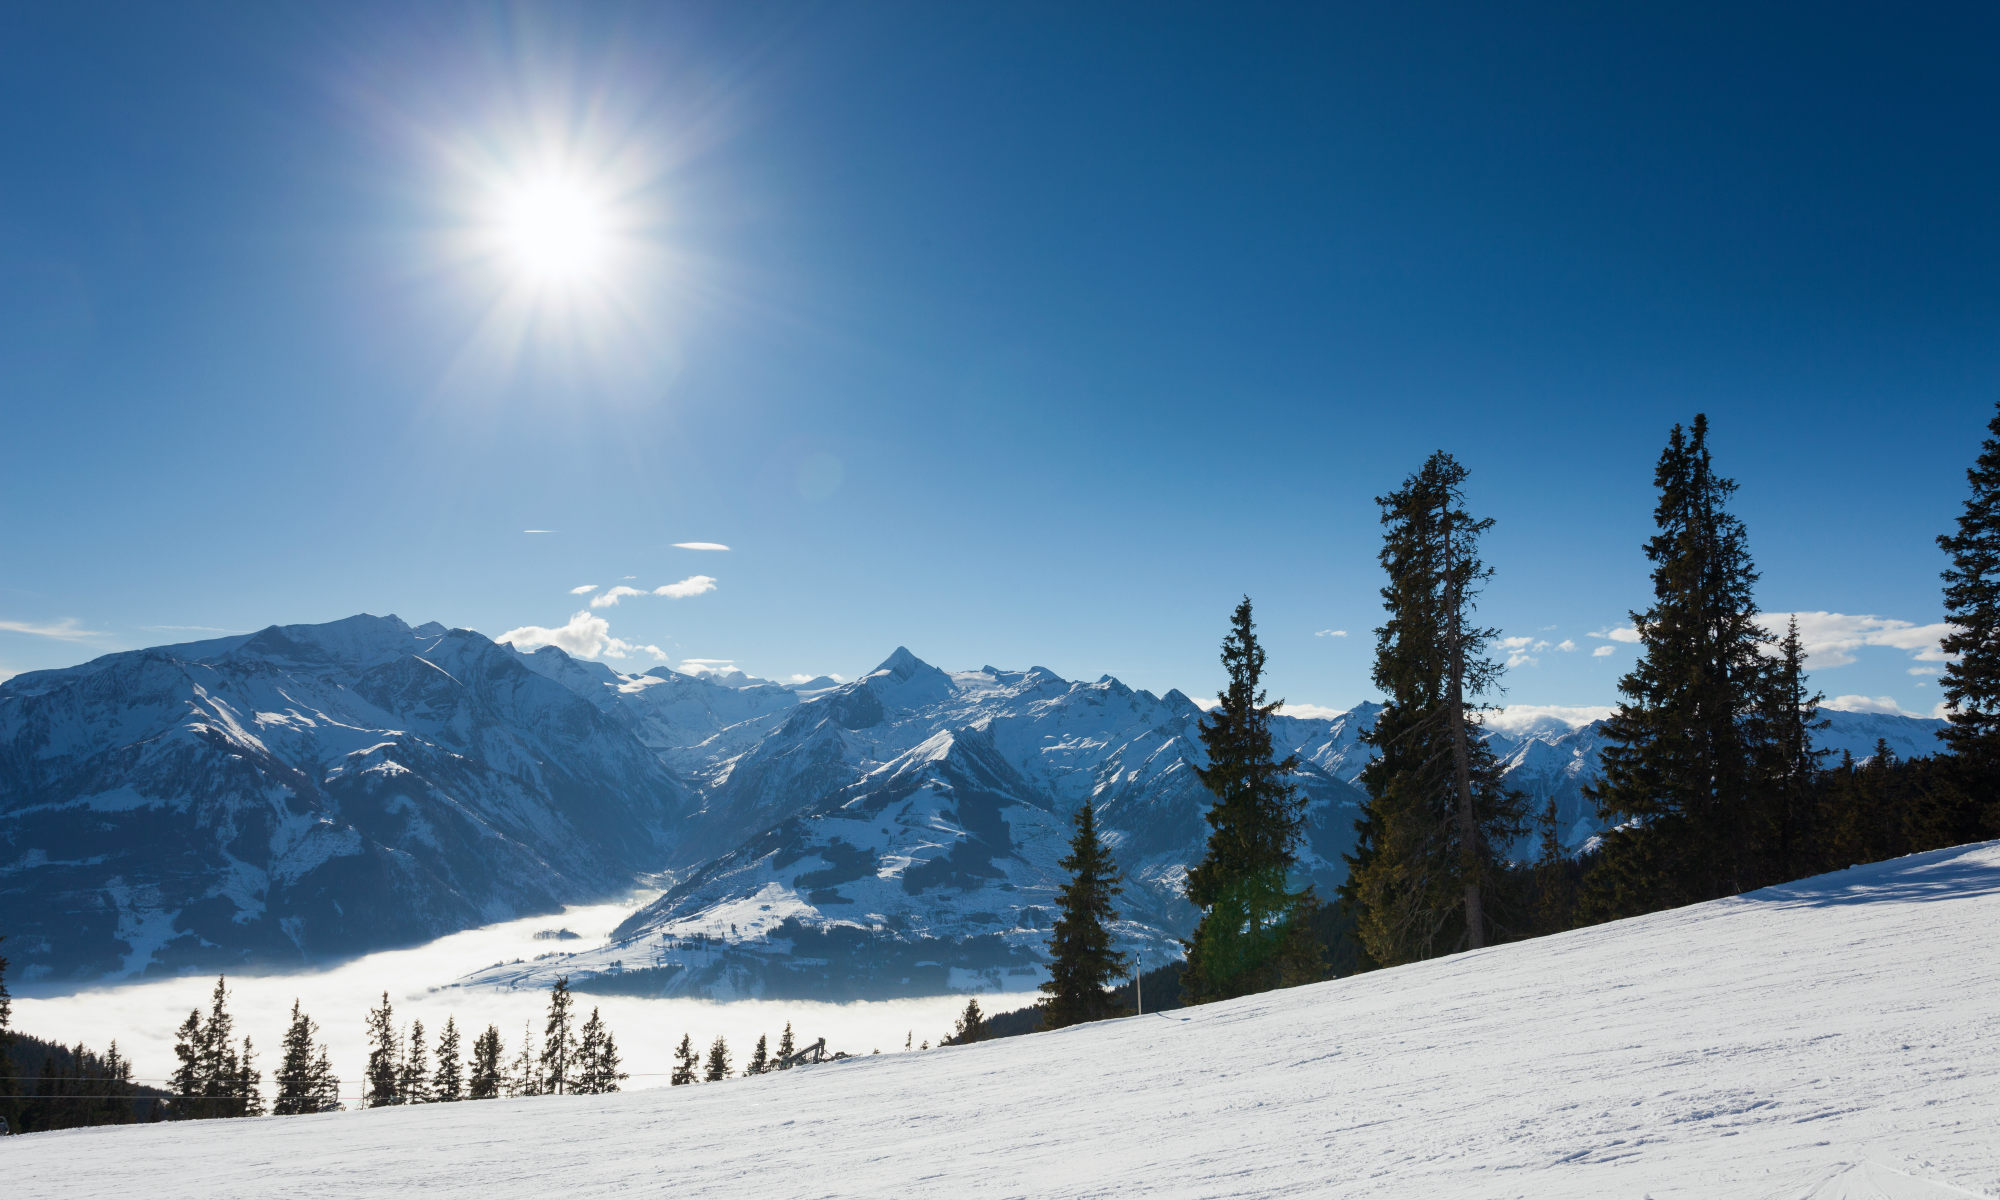 Panoramic view over the surrounding mountains of the ski resort Kaprun.